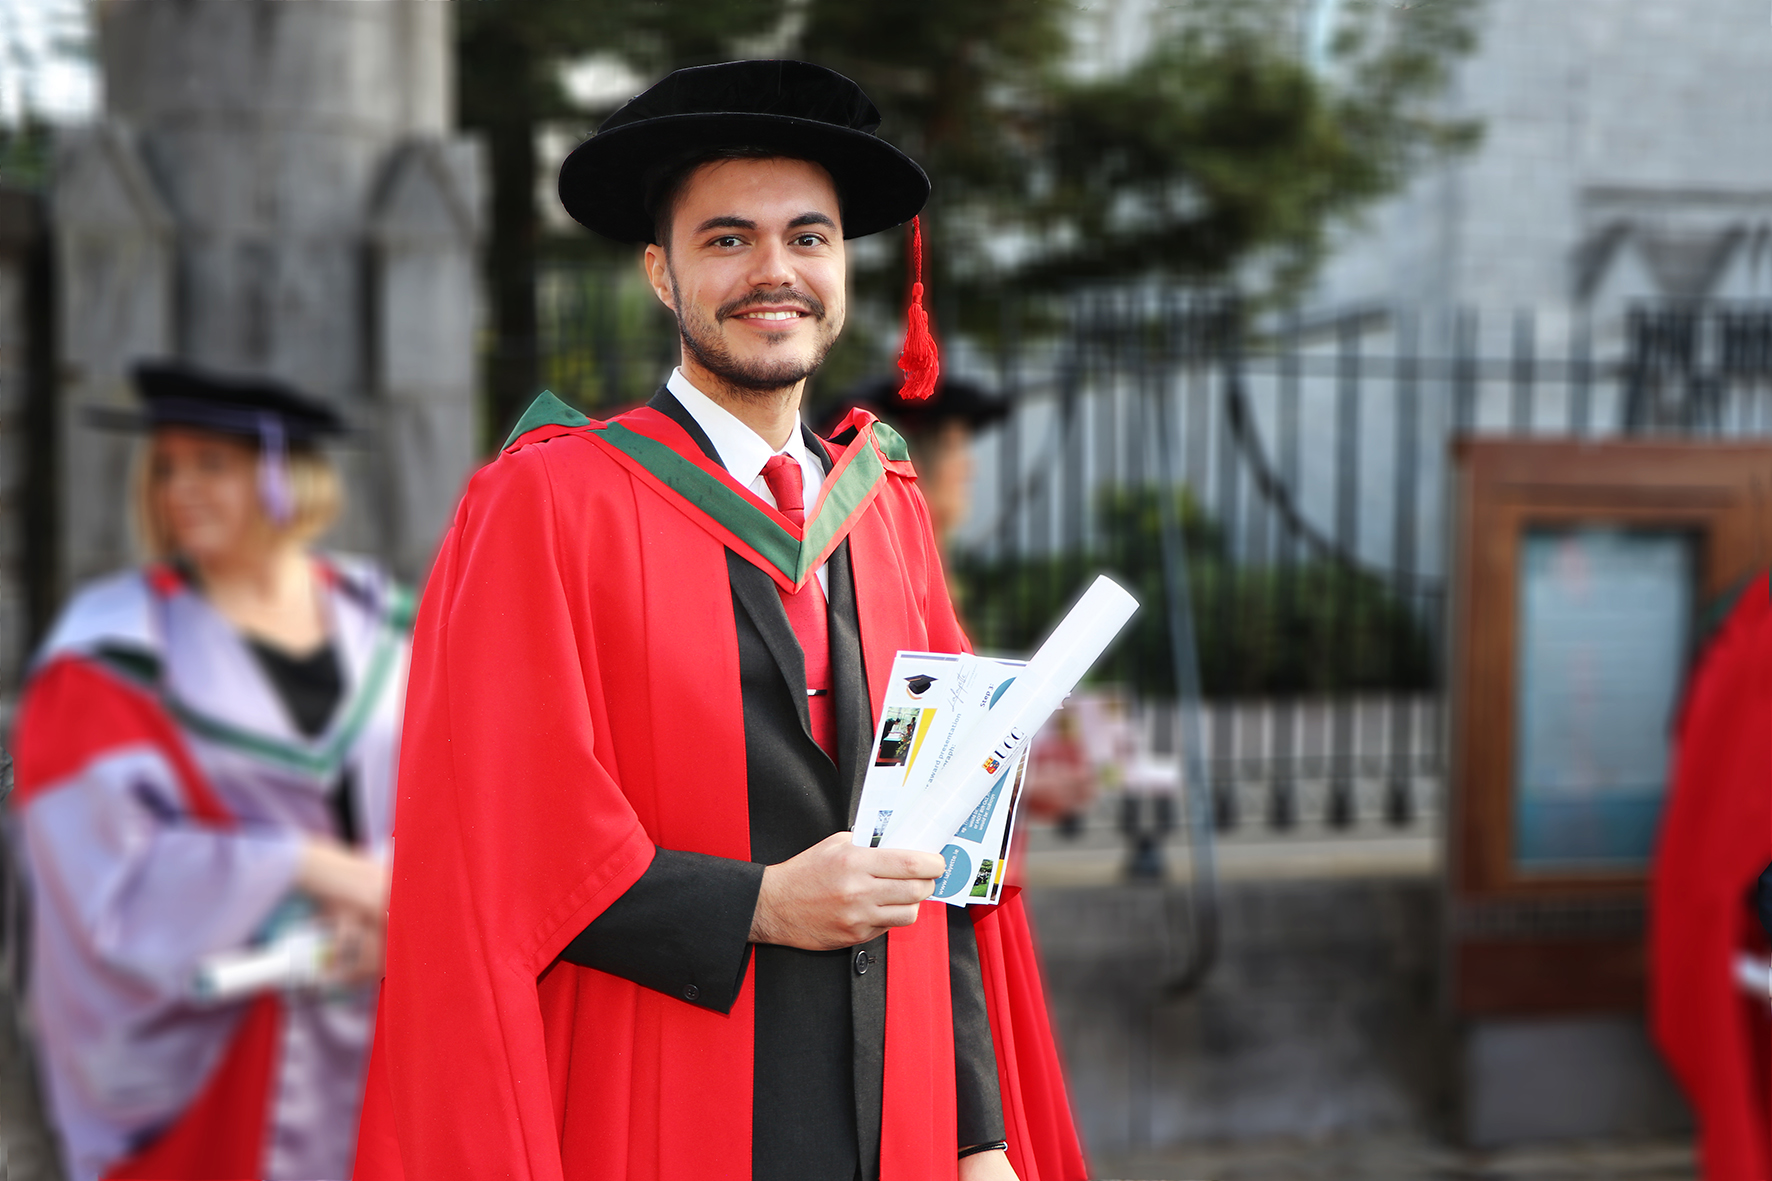 Science without Borders Dr Brunno Levone graduates with PhD in Neuroscience